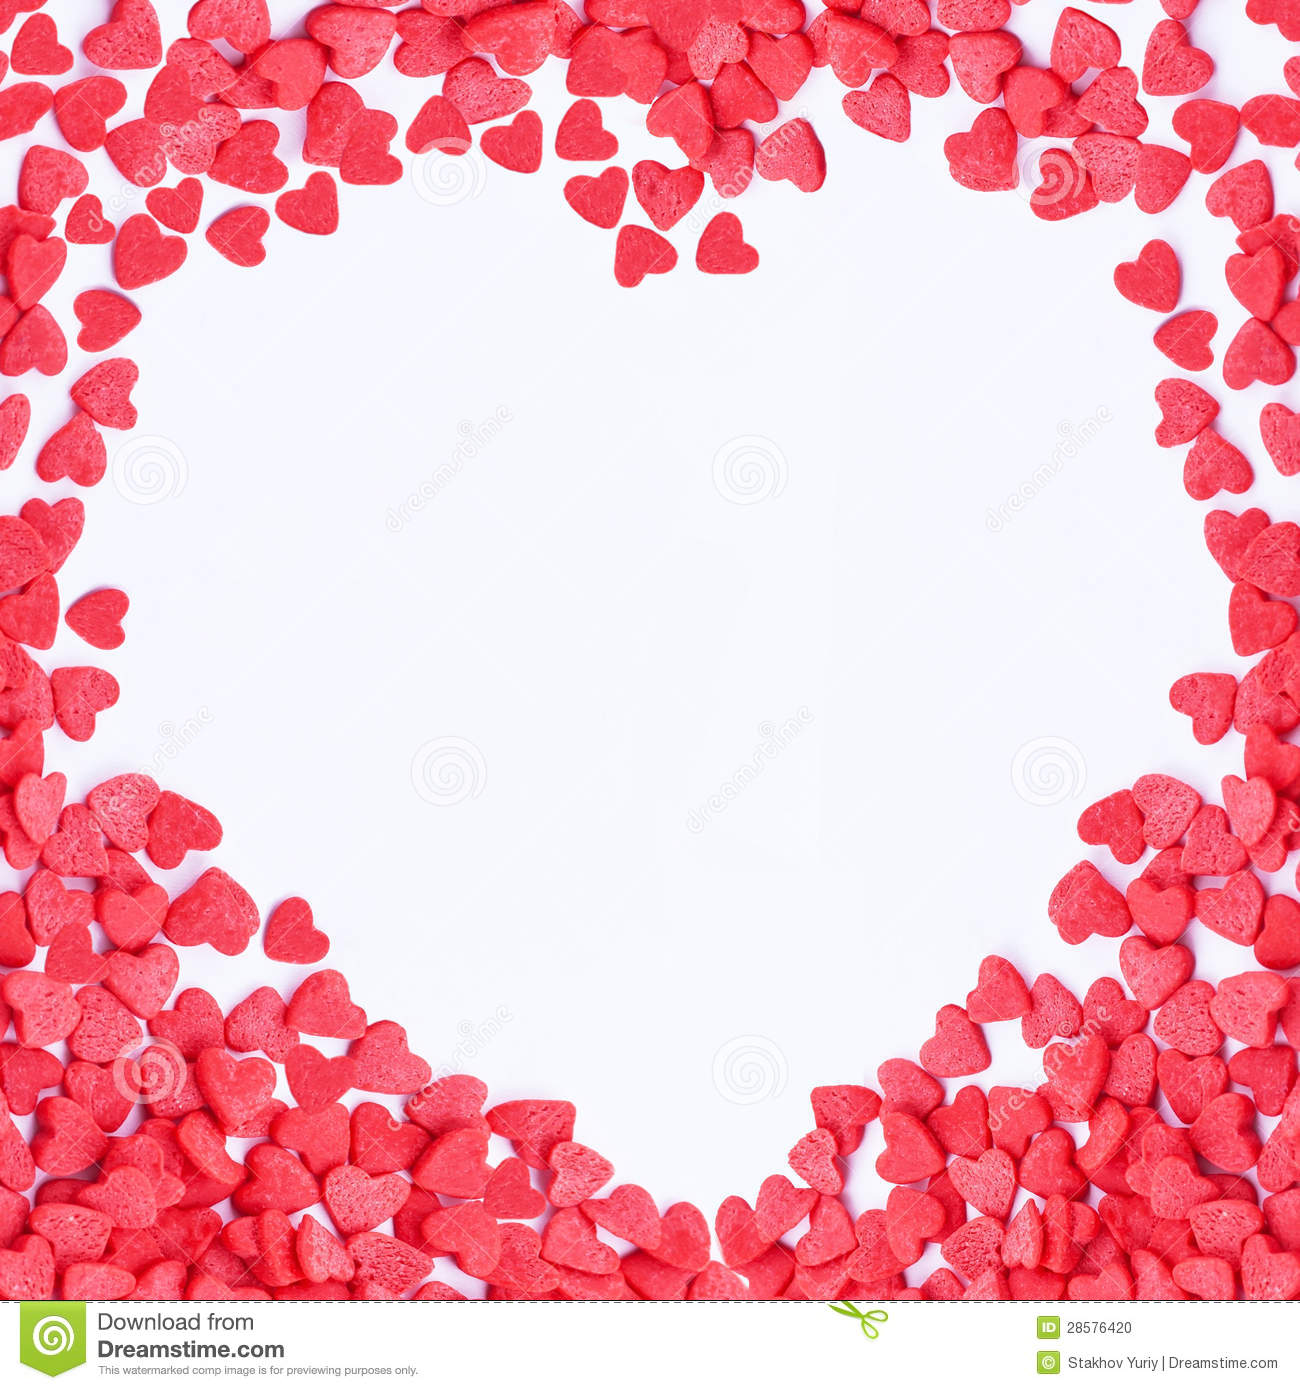 Valentine hearts frame stock photo. Image of composition - 28576420